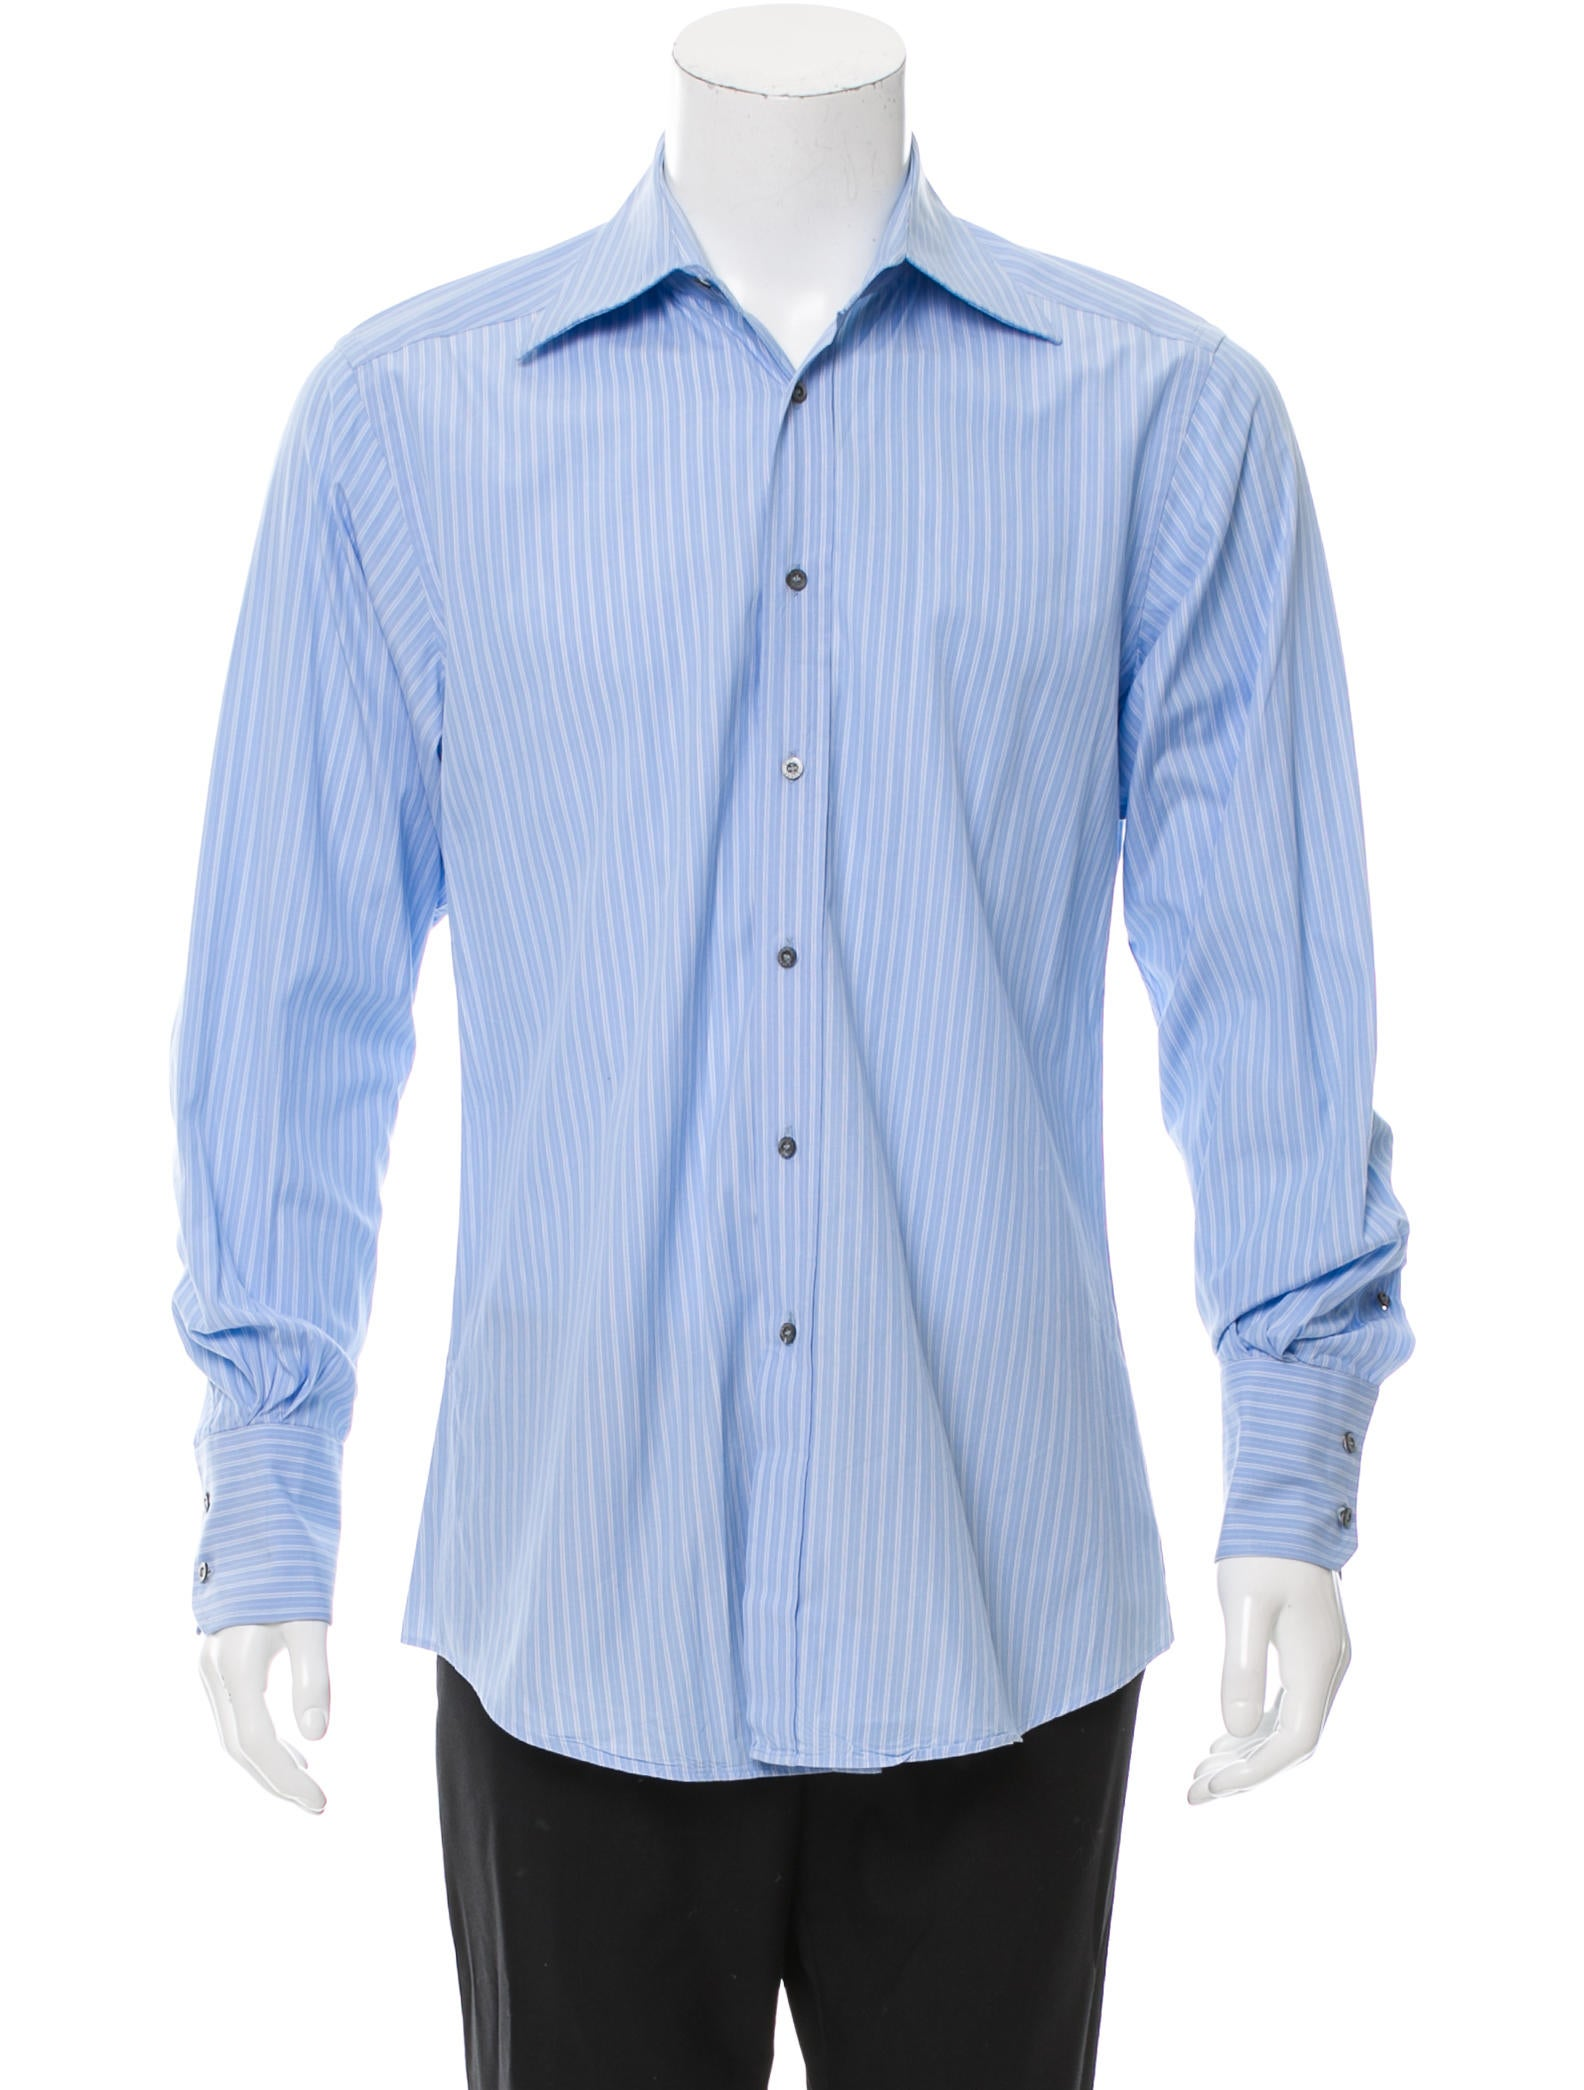 Gucci Striped Button Up Shirt Clothing Guc143818 The Realreal